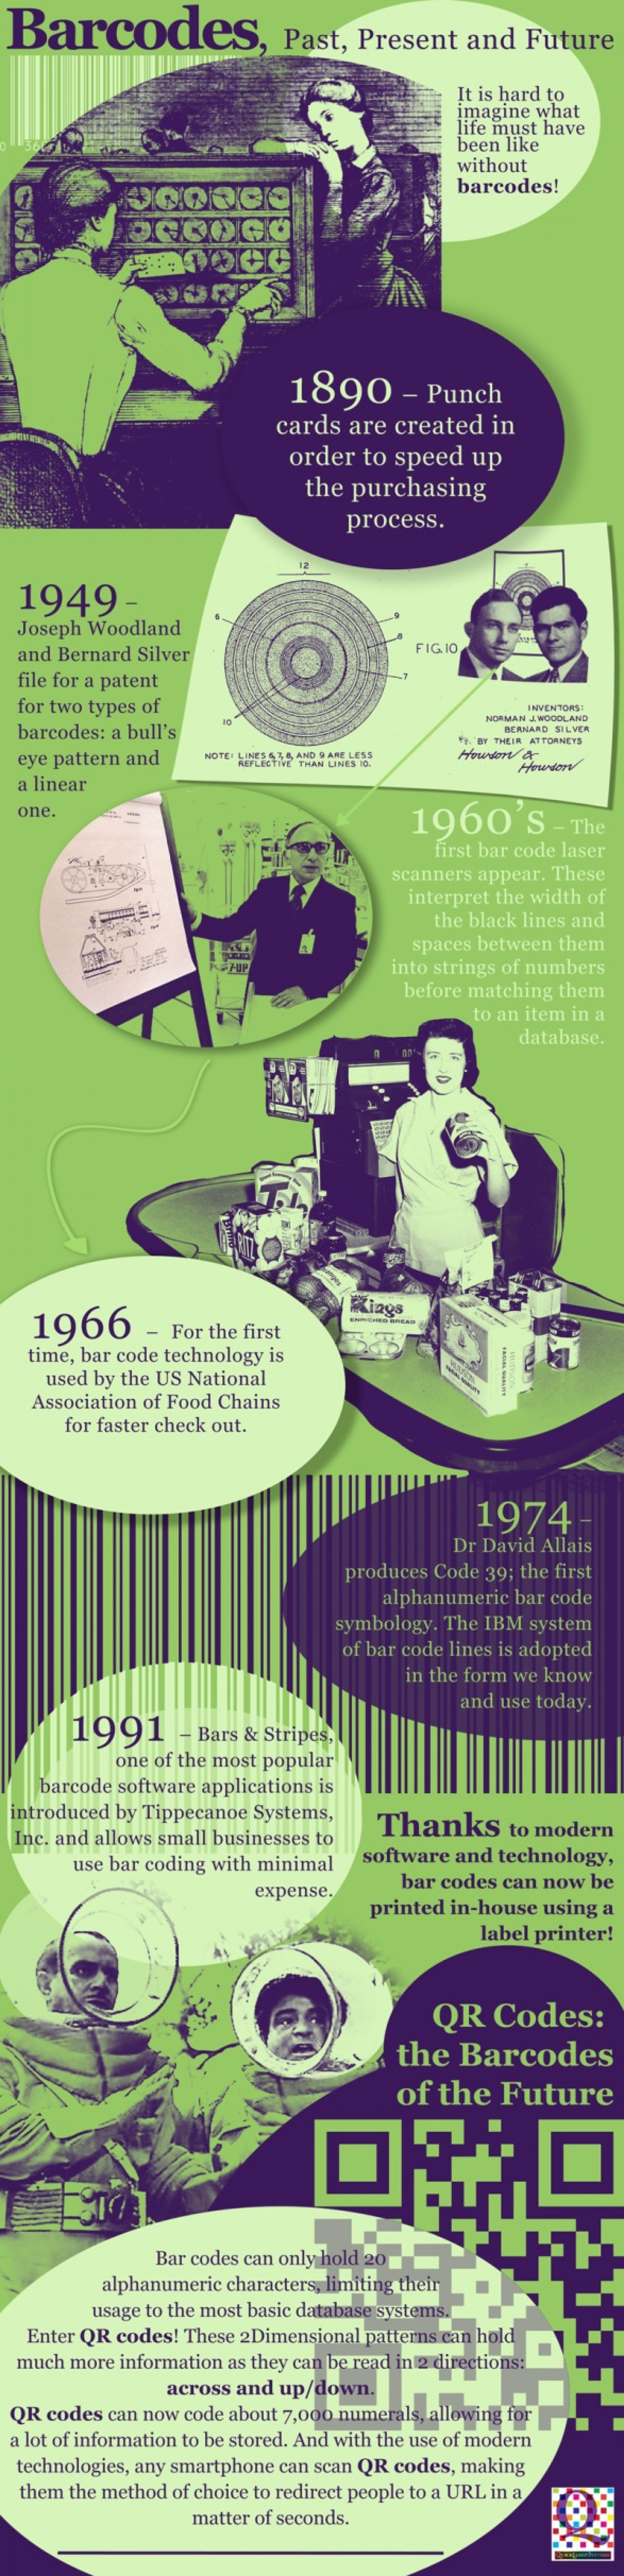 Barcodes, Past, Present And Future Infographic